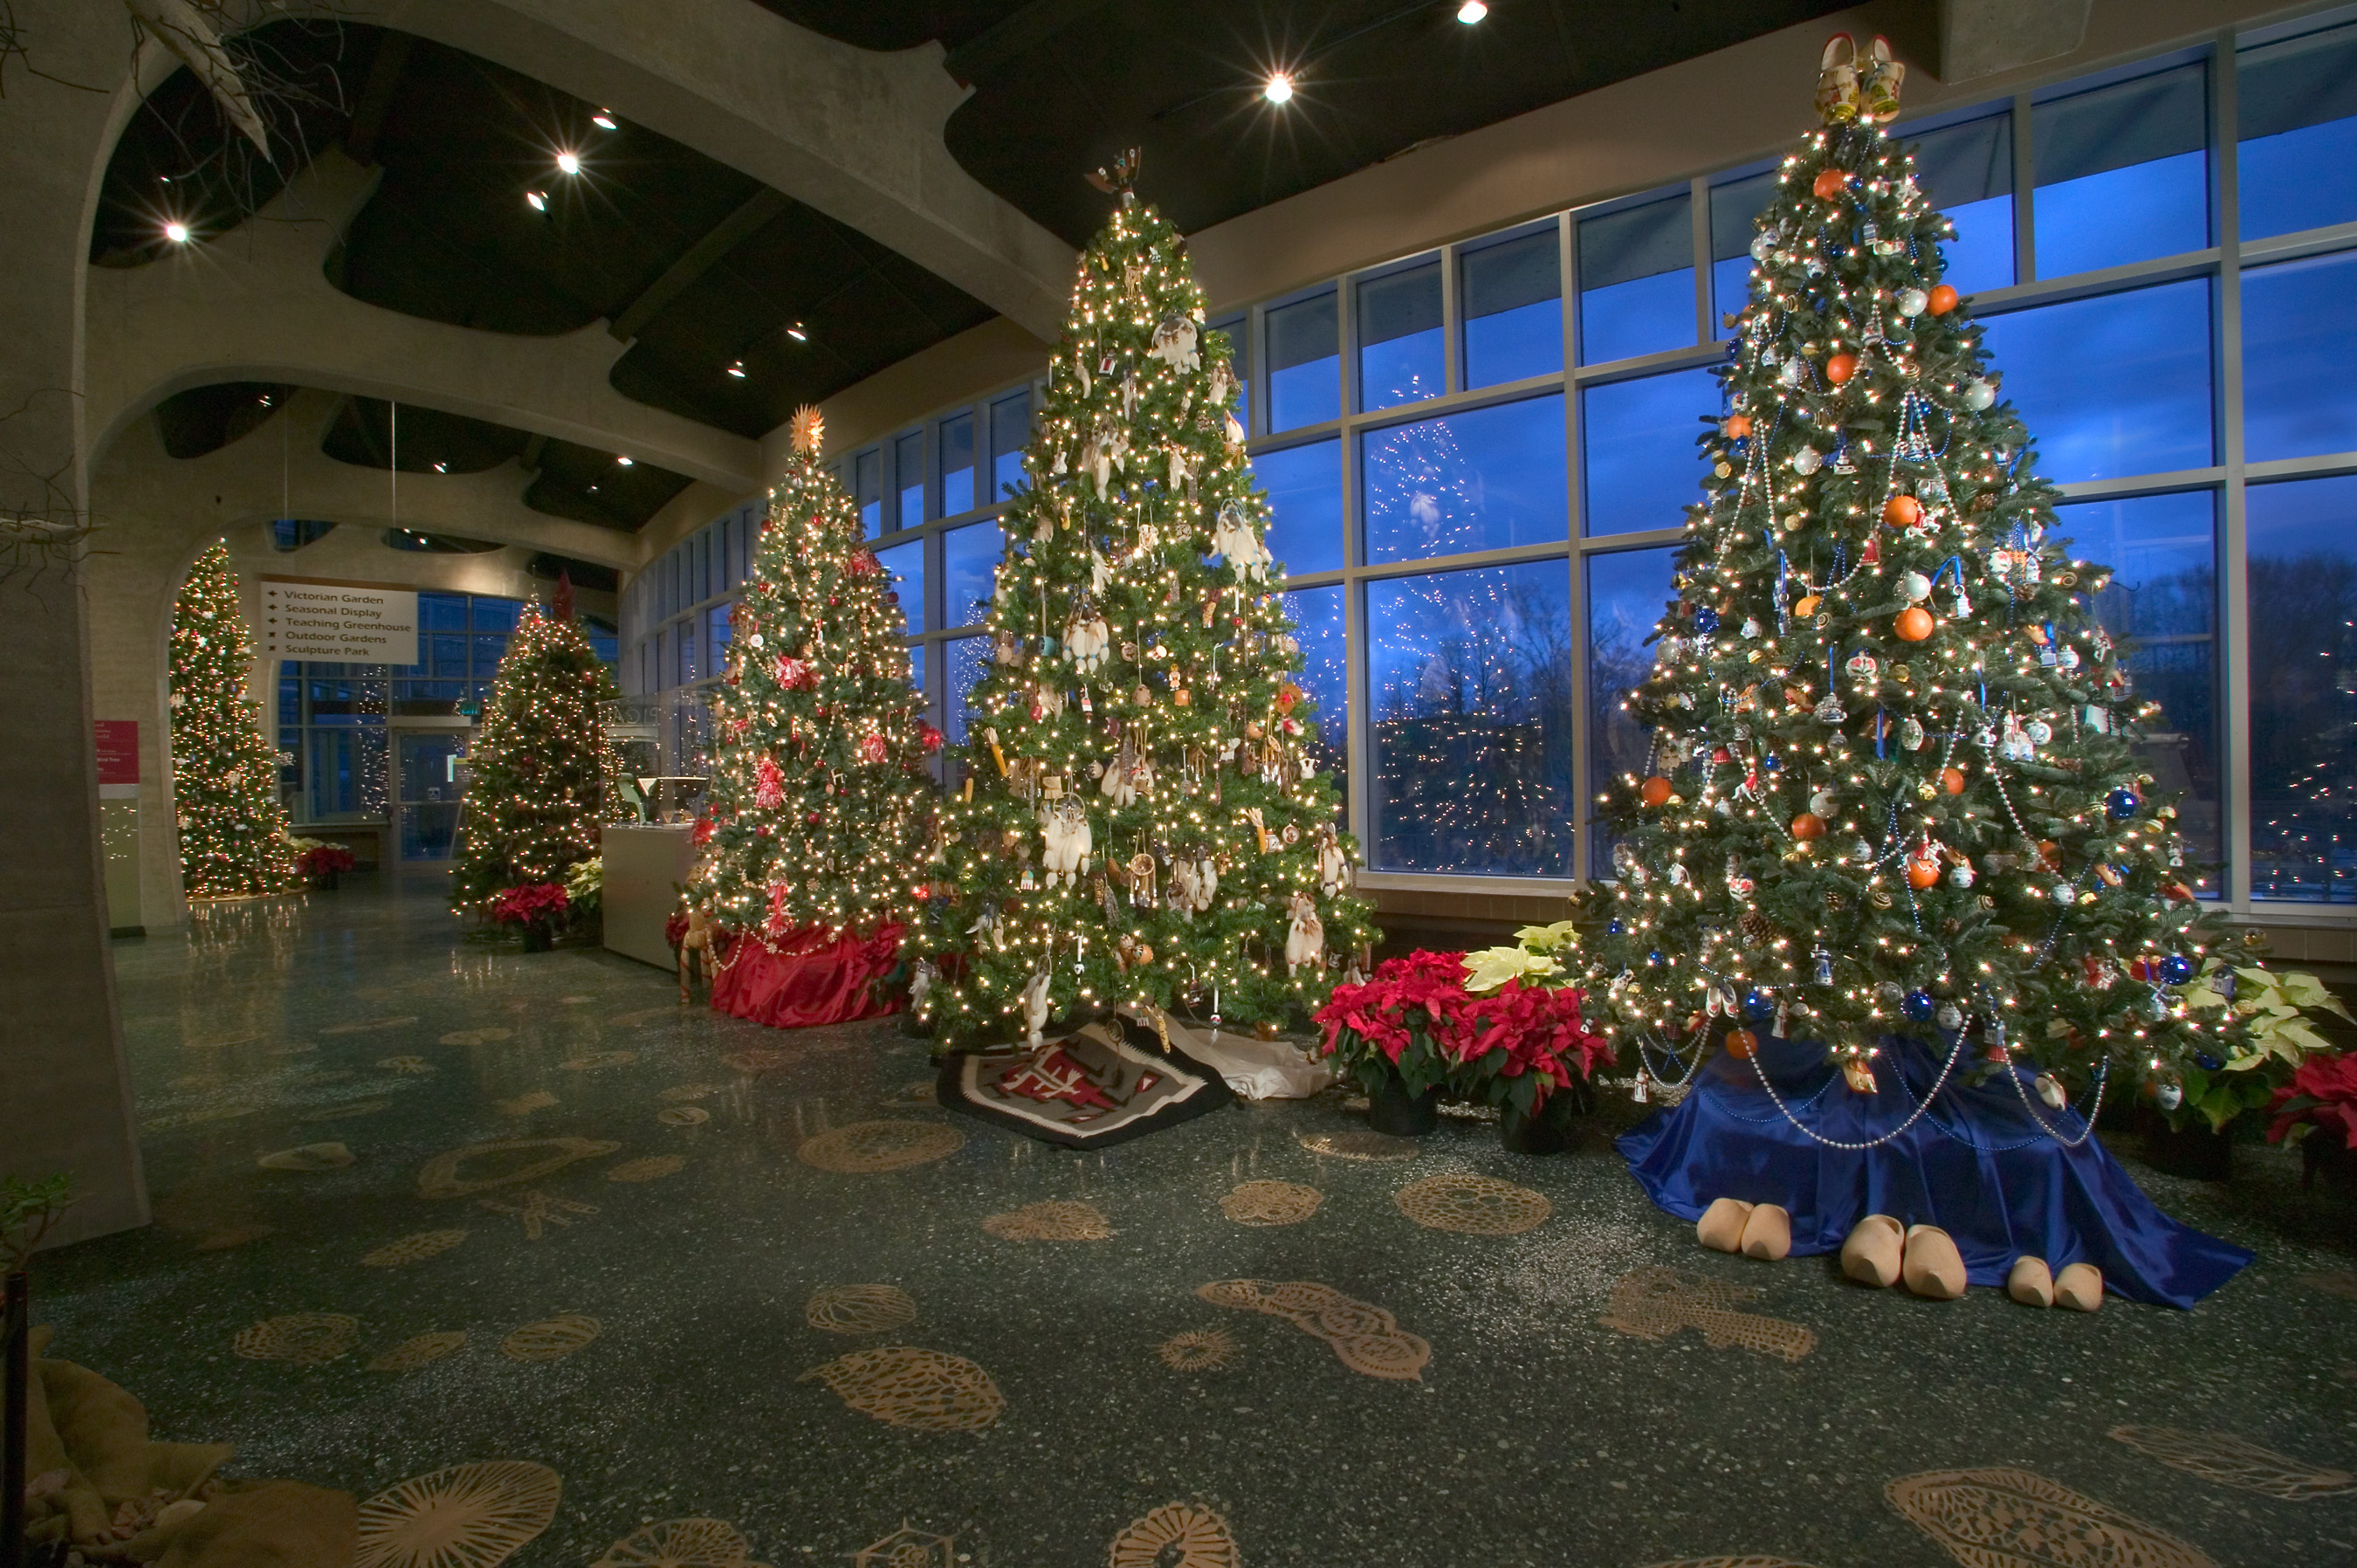 Exhibition Displays : Meijer gardens celebrates the holidays with more than